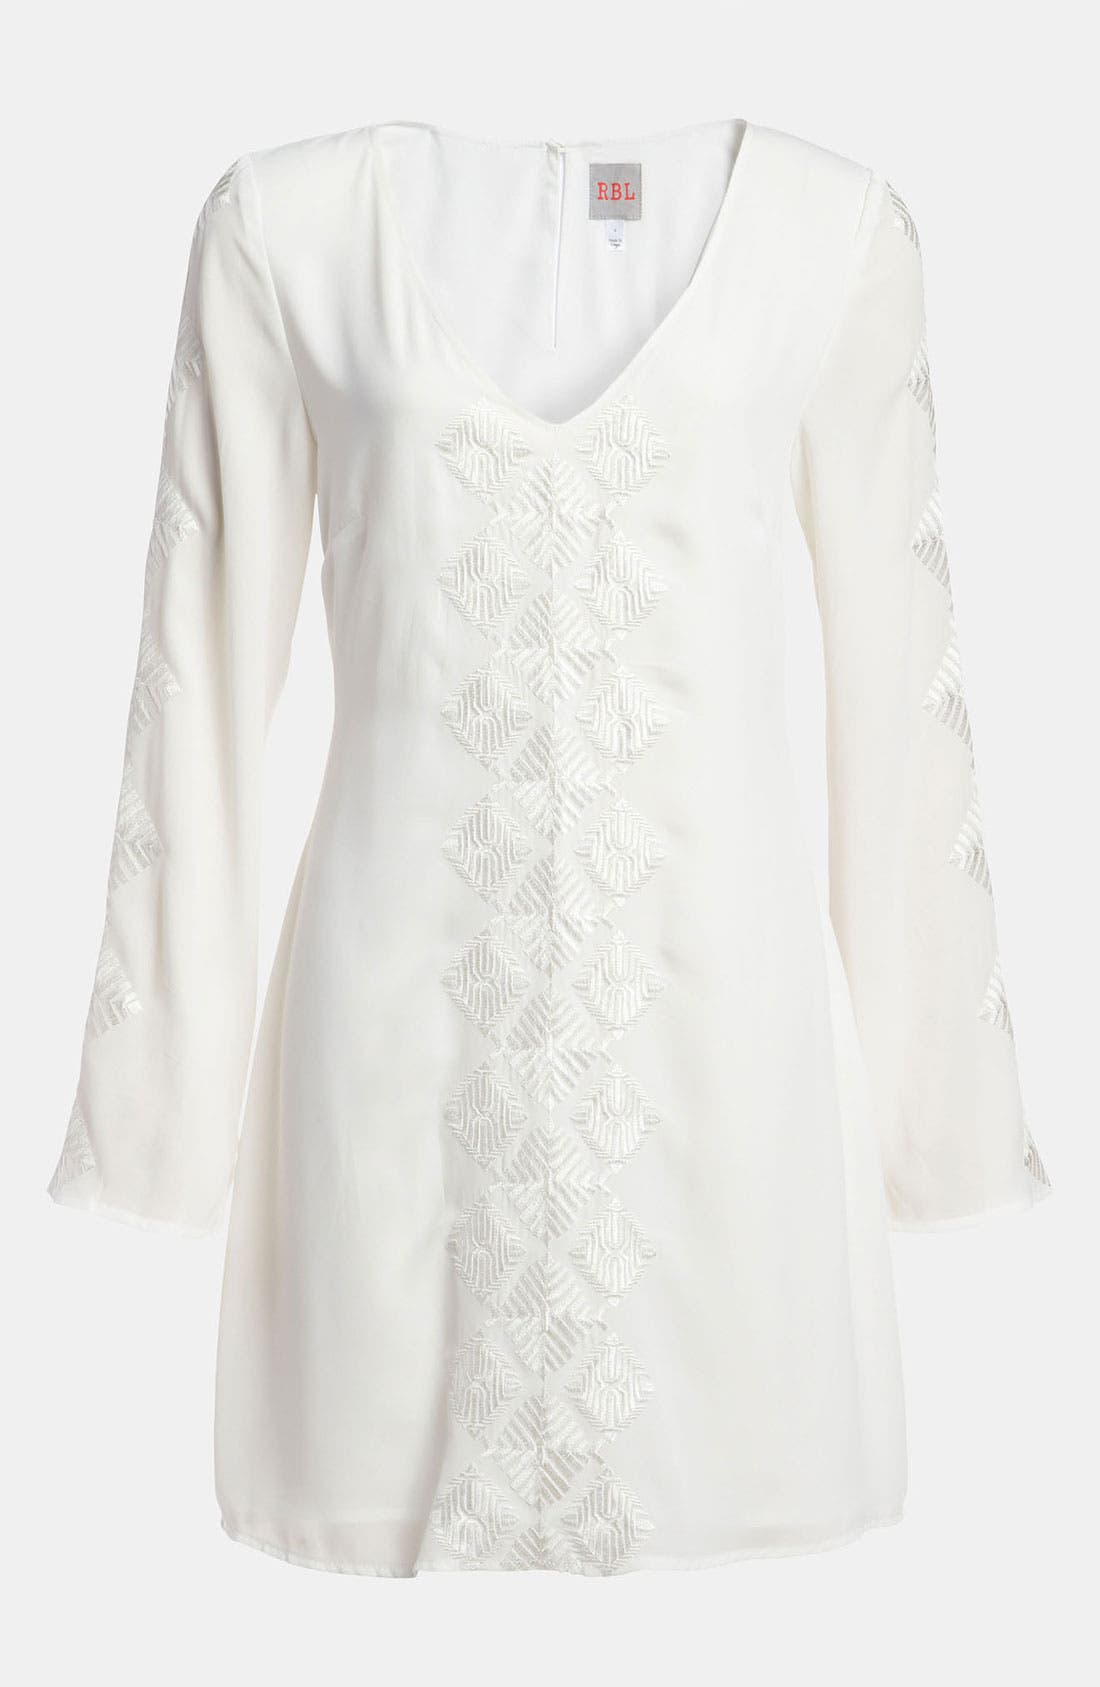 Alternate Image 1 Selected - RBL Embroidered Shift Dress